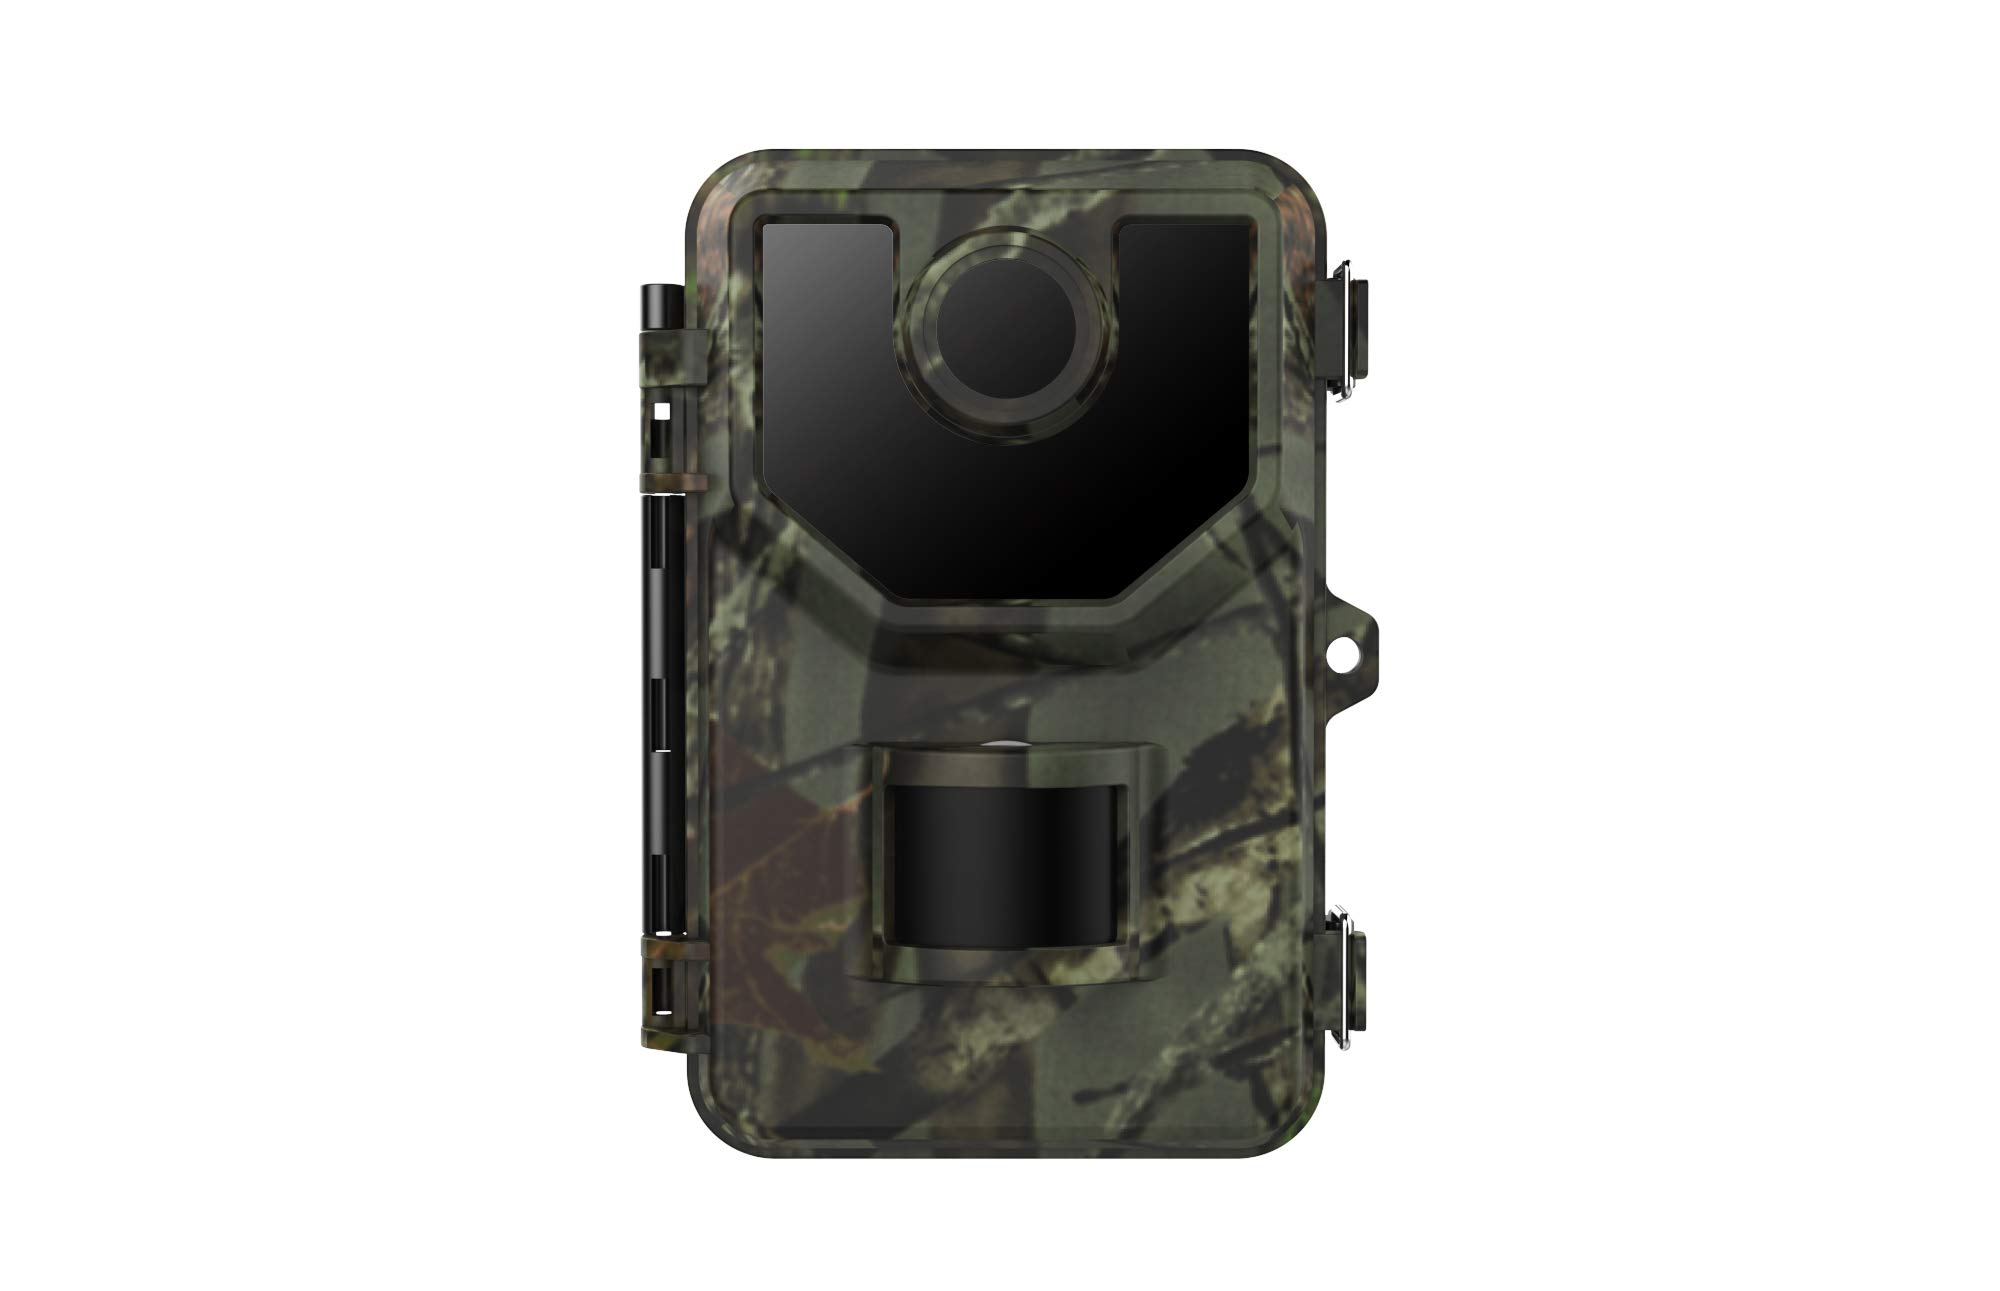 Trail Game Camera 1080P 16MP Wildlife Hunting Camera,Motion Activated Infrared Night Vision Camera for Wildlife Hunting &Home Security,2.4'' LCD Display,IP65 Waterproof,120° FOV,48 LEDs (Green 03005)